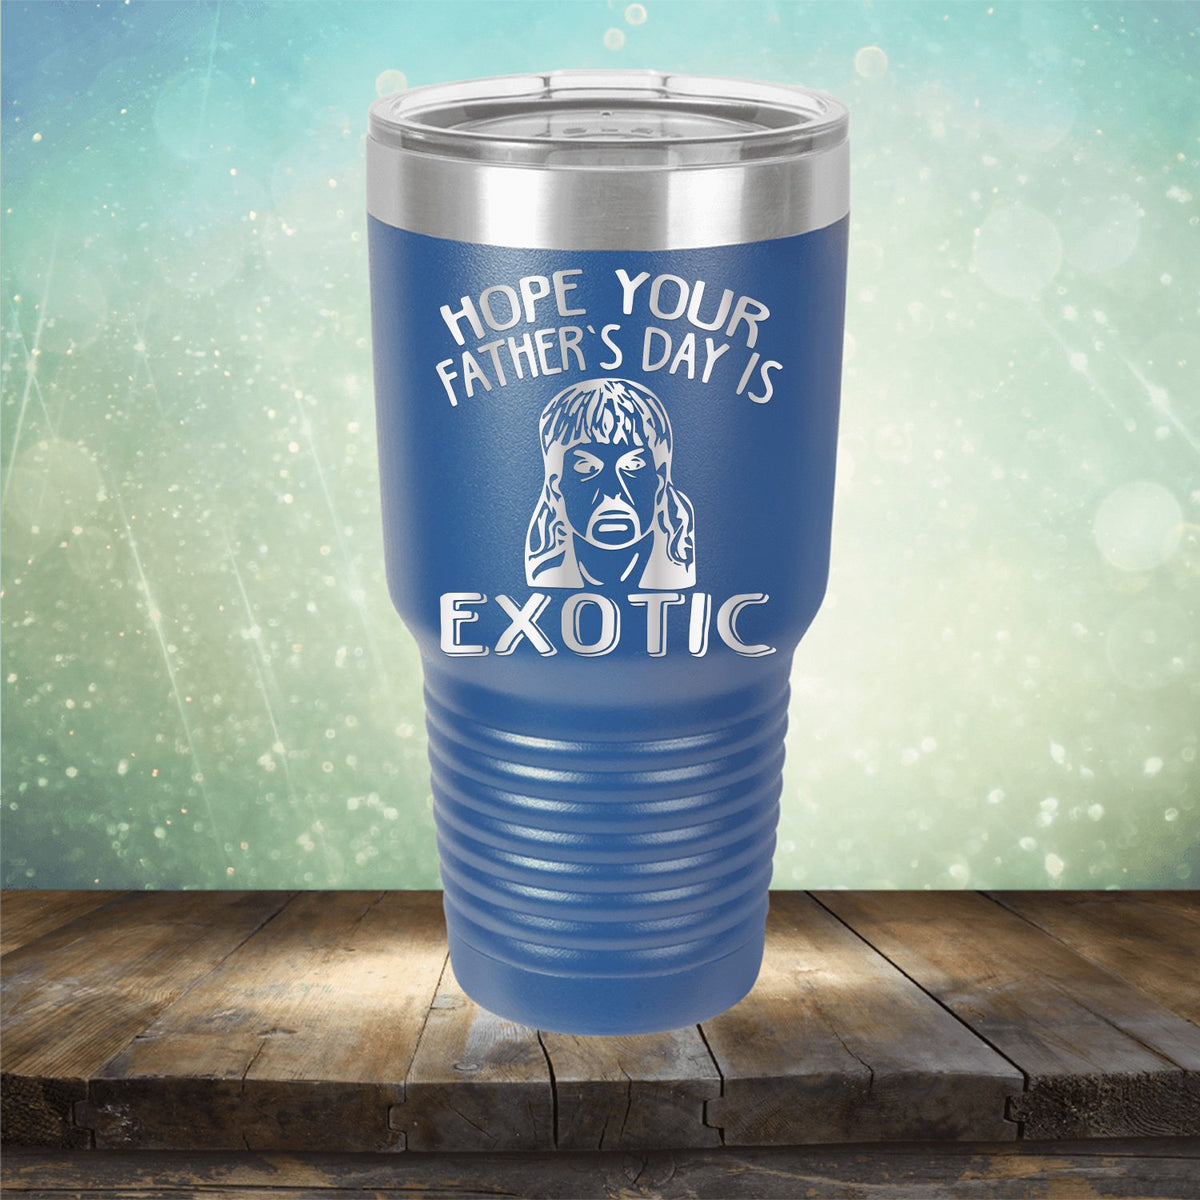 Hope Your Father's Day is Exotic